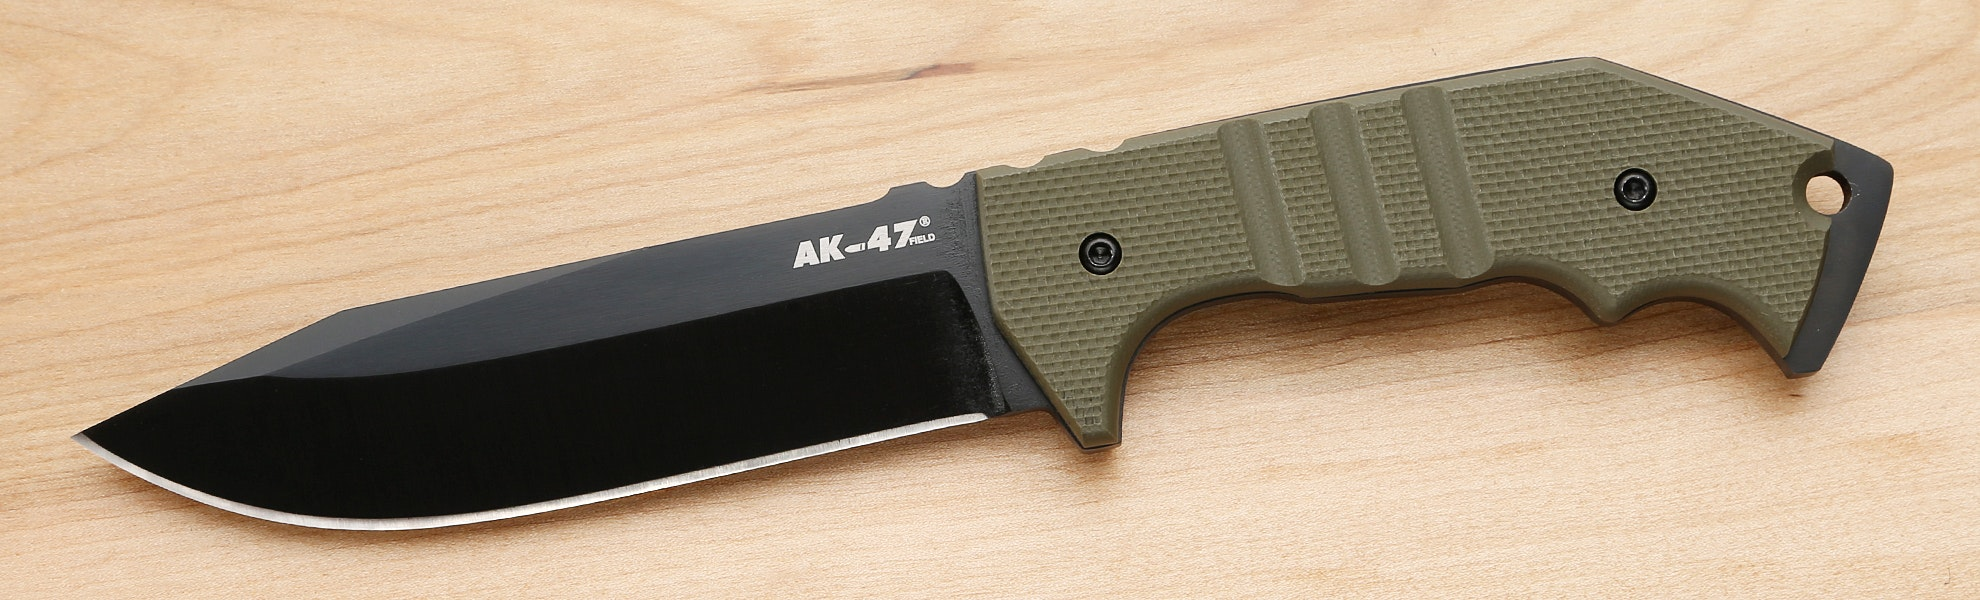 Cold Steel AK-47 Field Knife